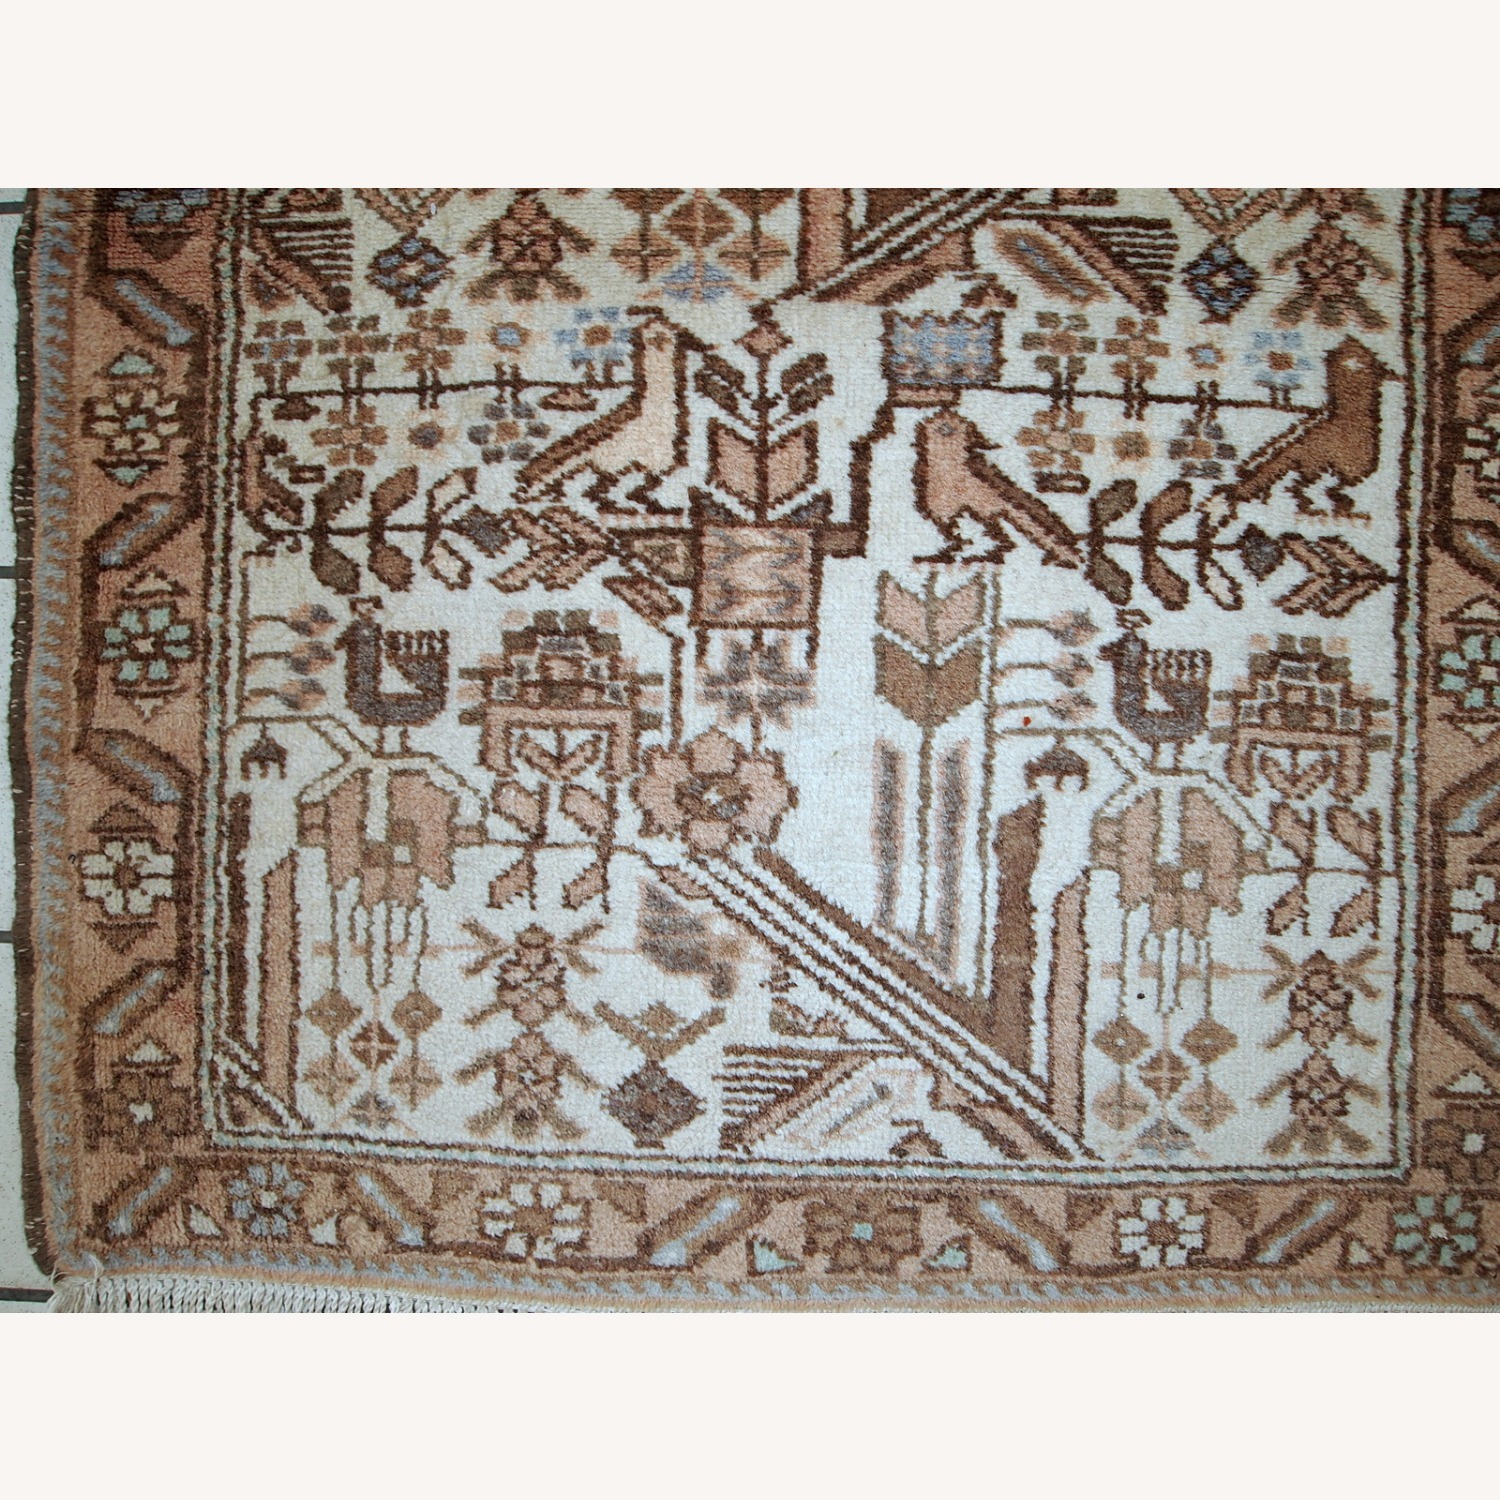 Handmade antique Persian Mashad rug - image-7